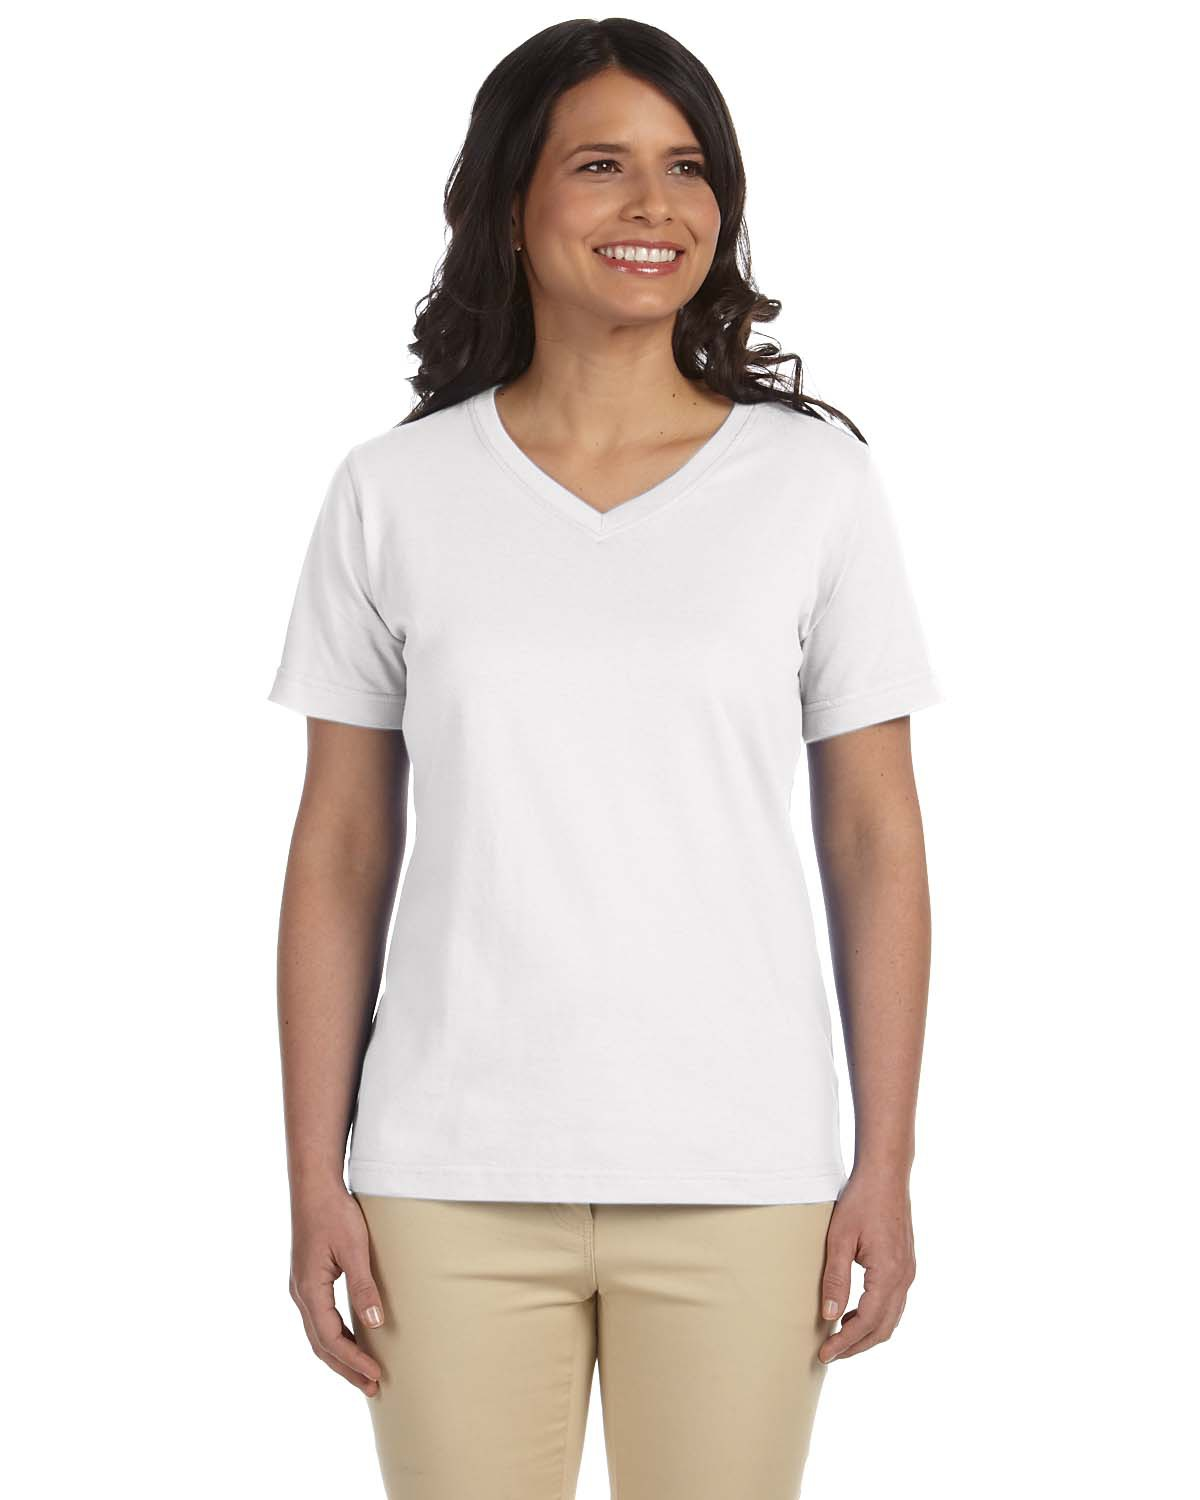 L.A.T Ladies' L-3587 - Combed Ringspun Jersey V-Neck ...